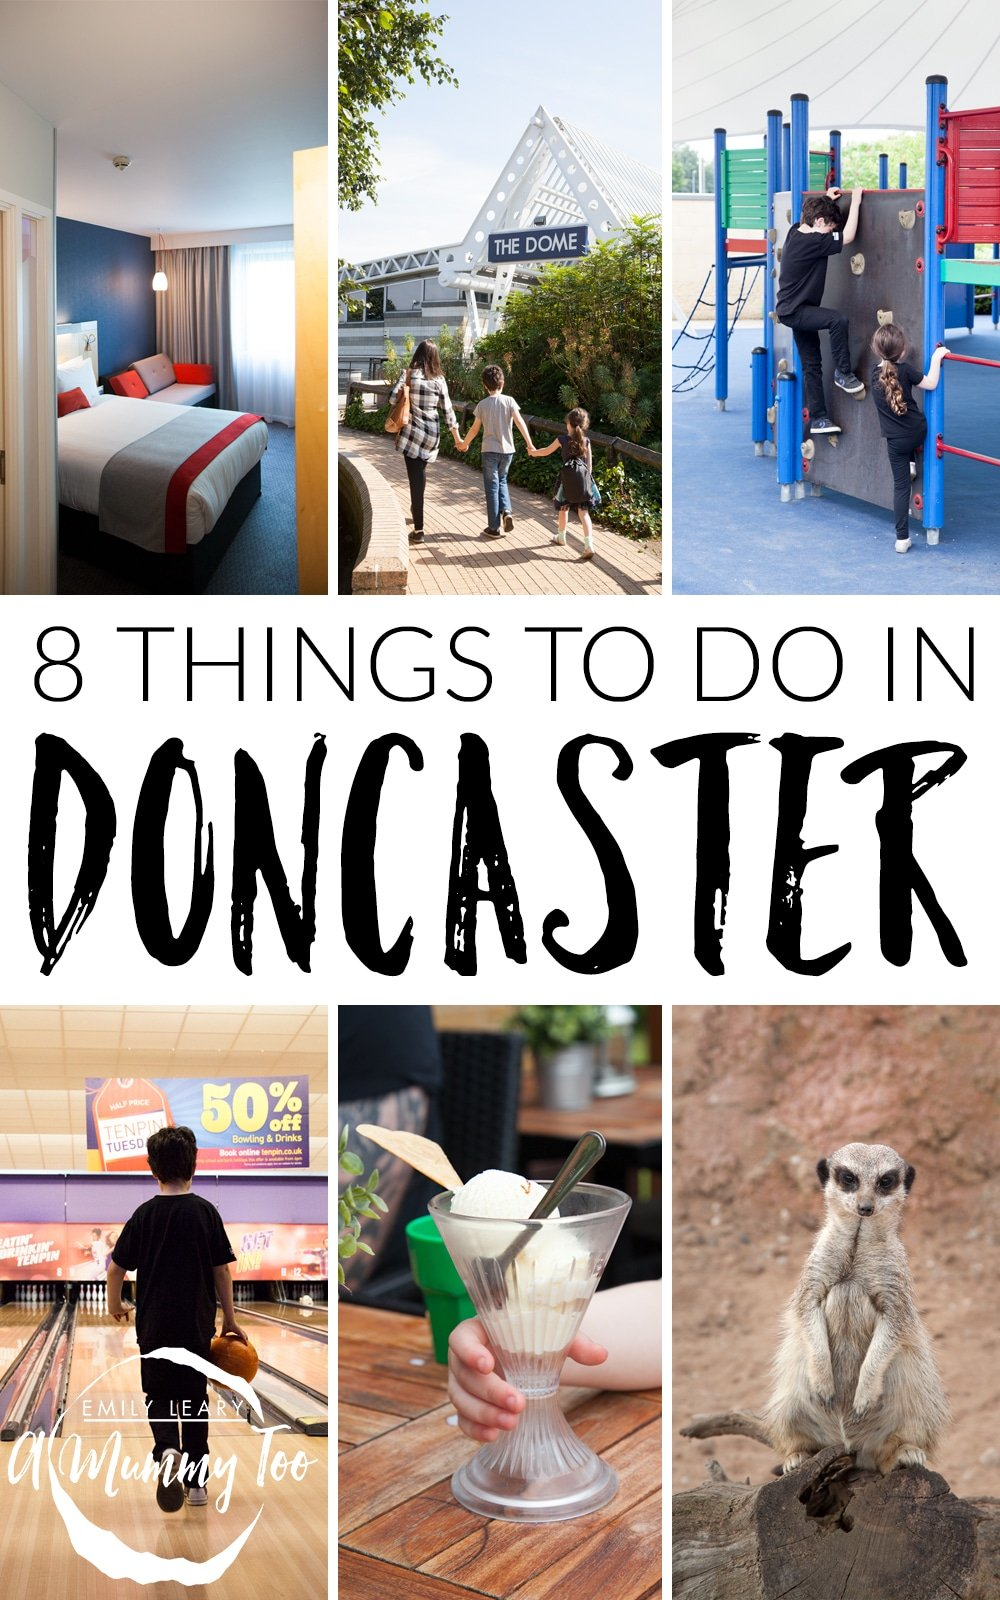 8-THINGS-TO-DO-IN-DONCASTER